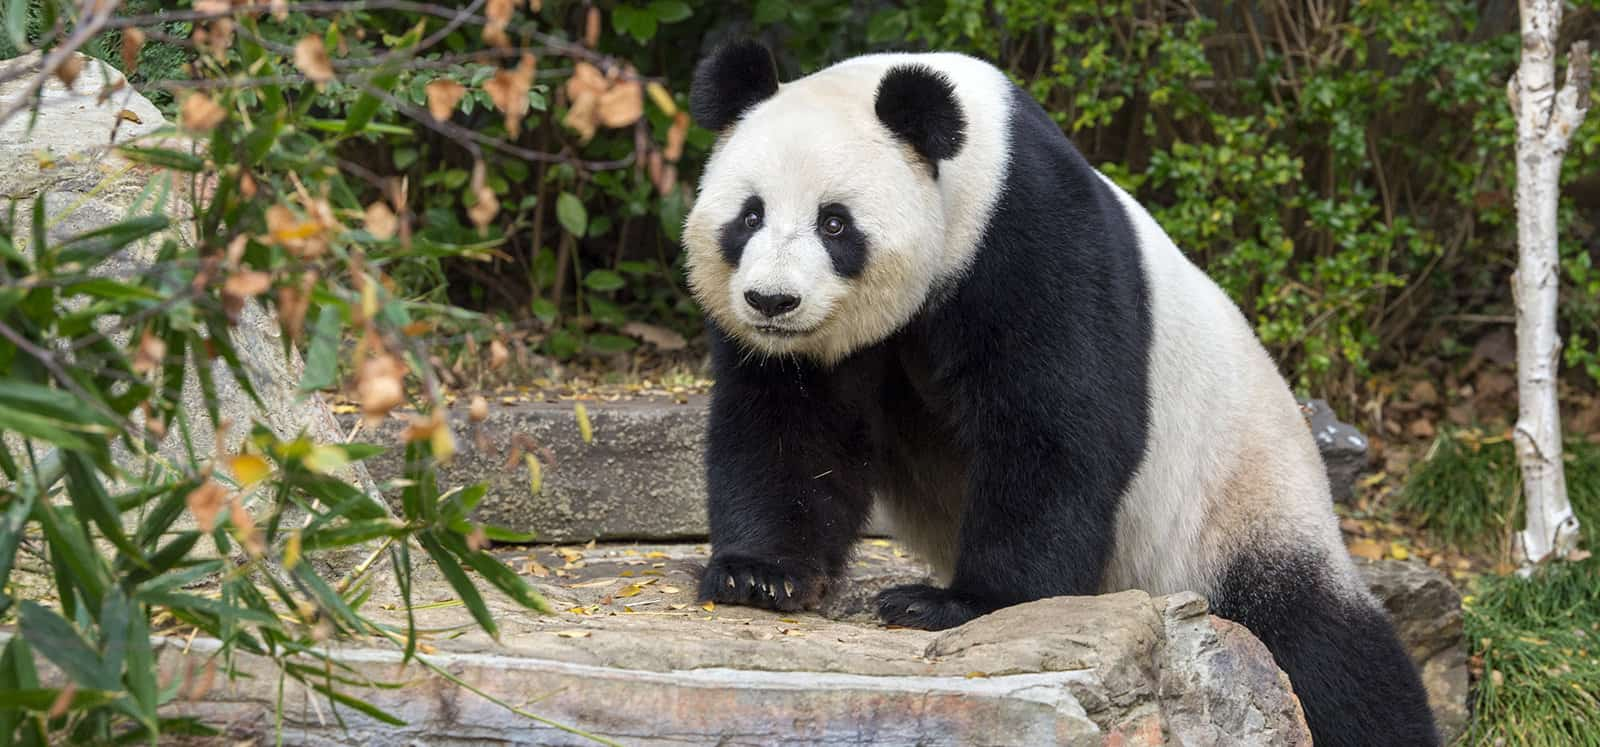 Giant Panda climbing onto rock at Adelaide Zoo